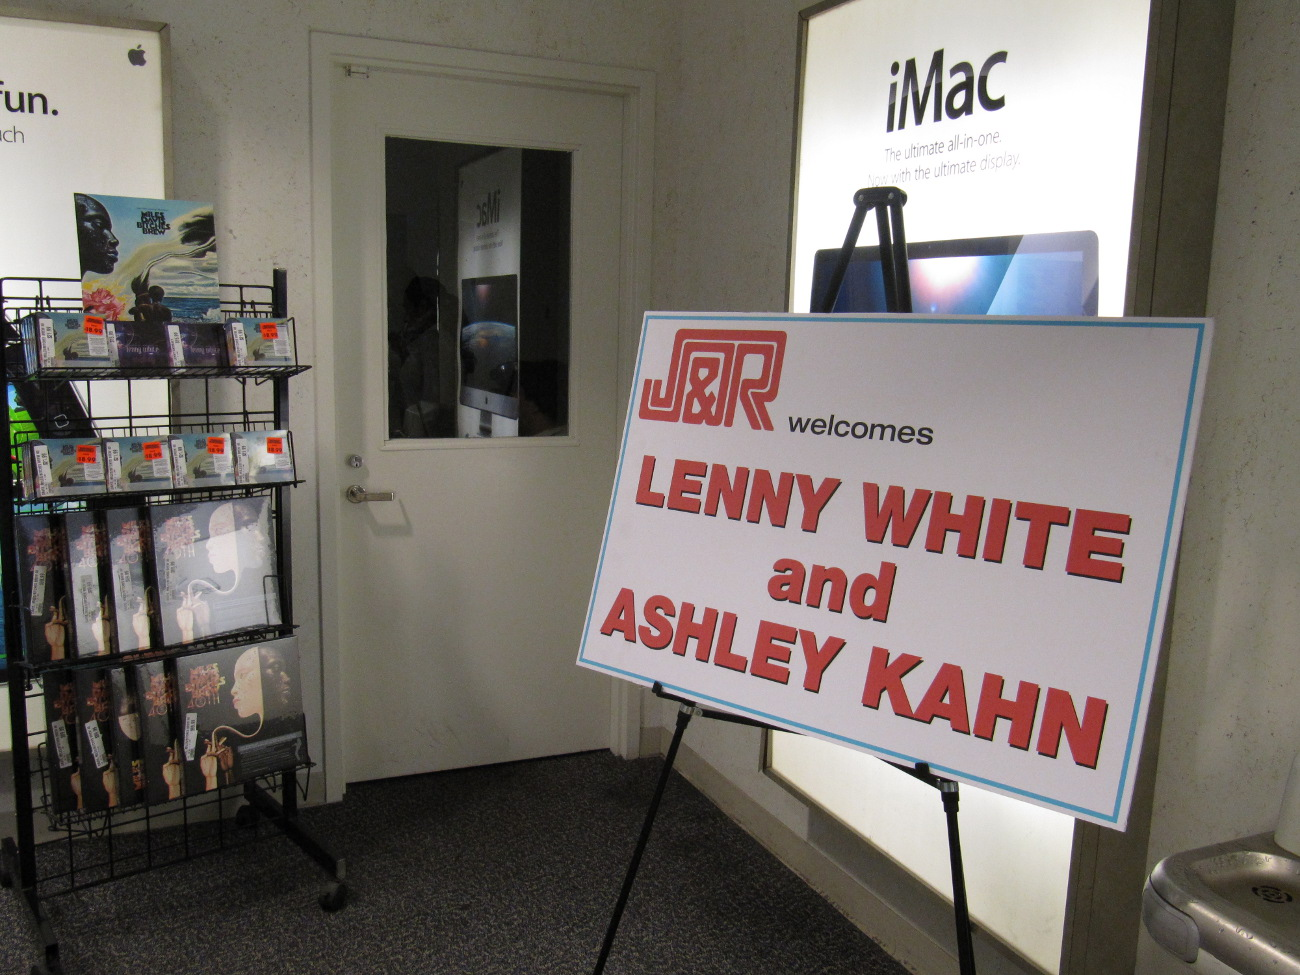 J&R Welcomes Lenny White and Ashley Kahn